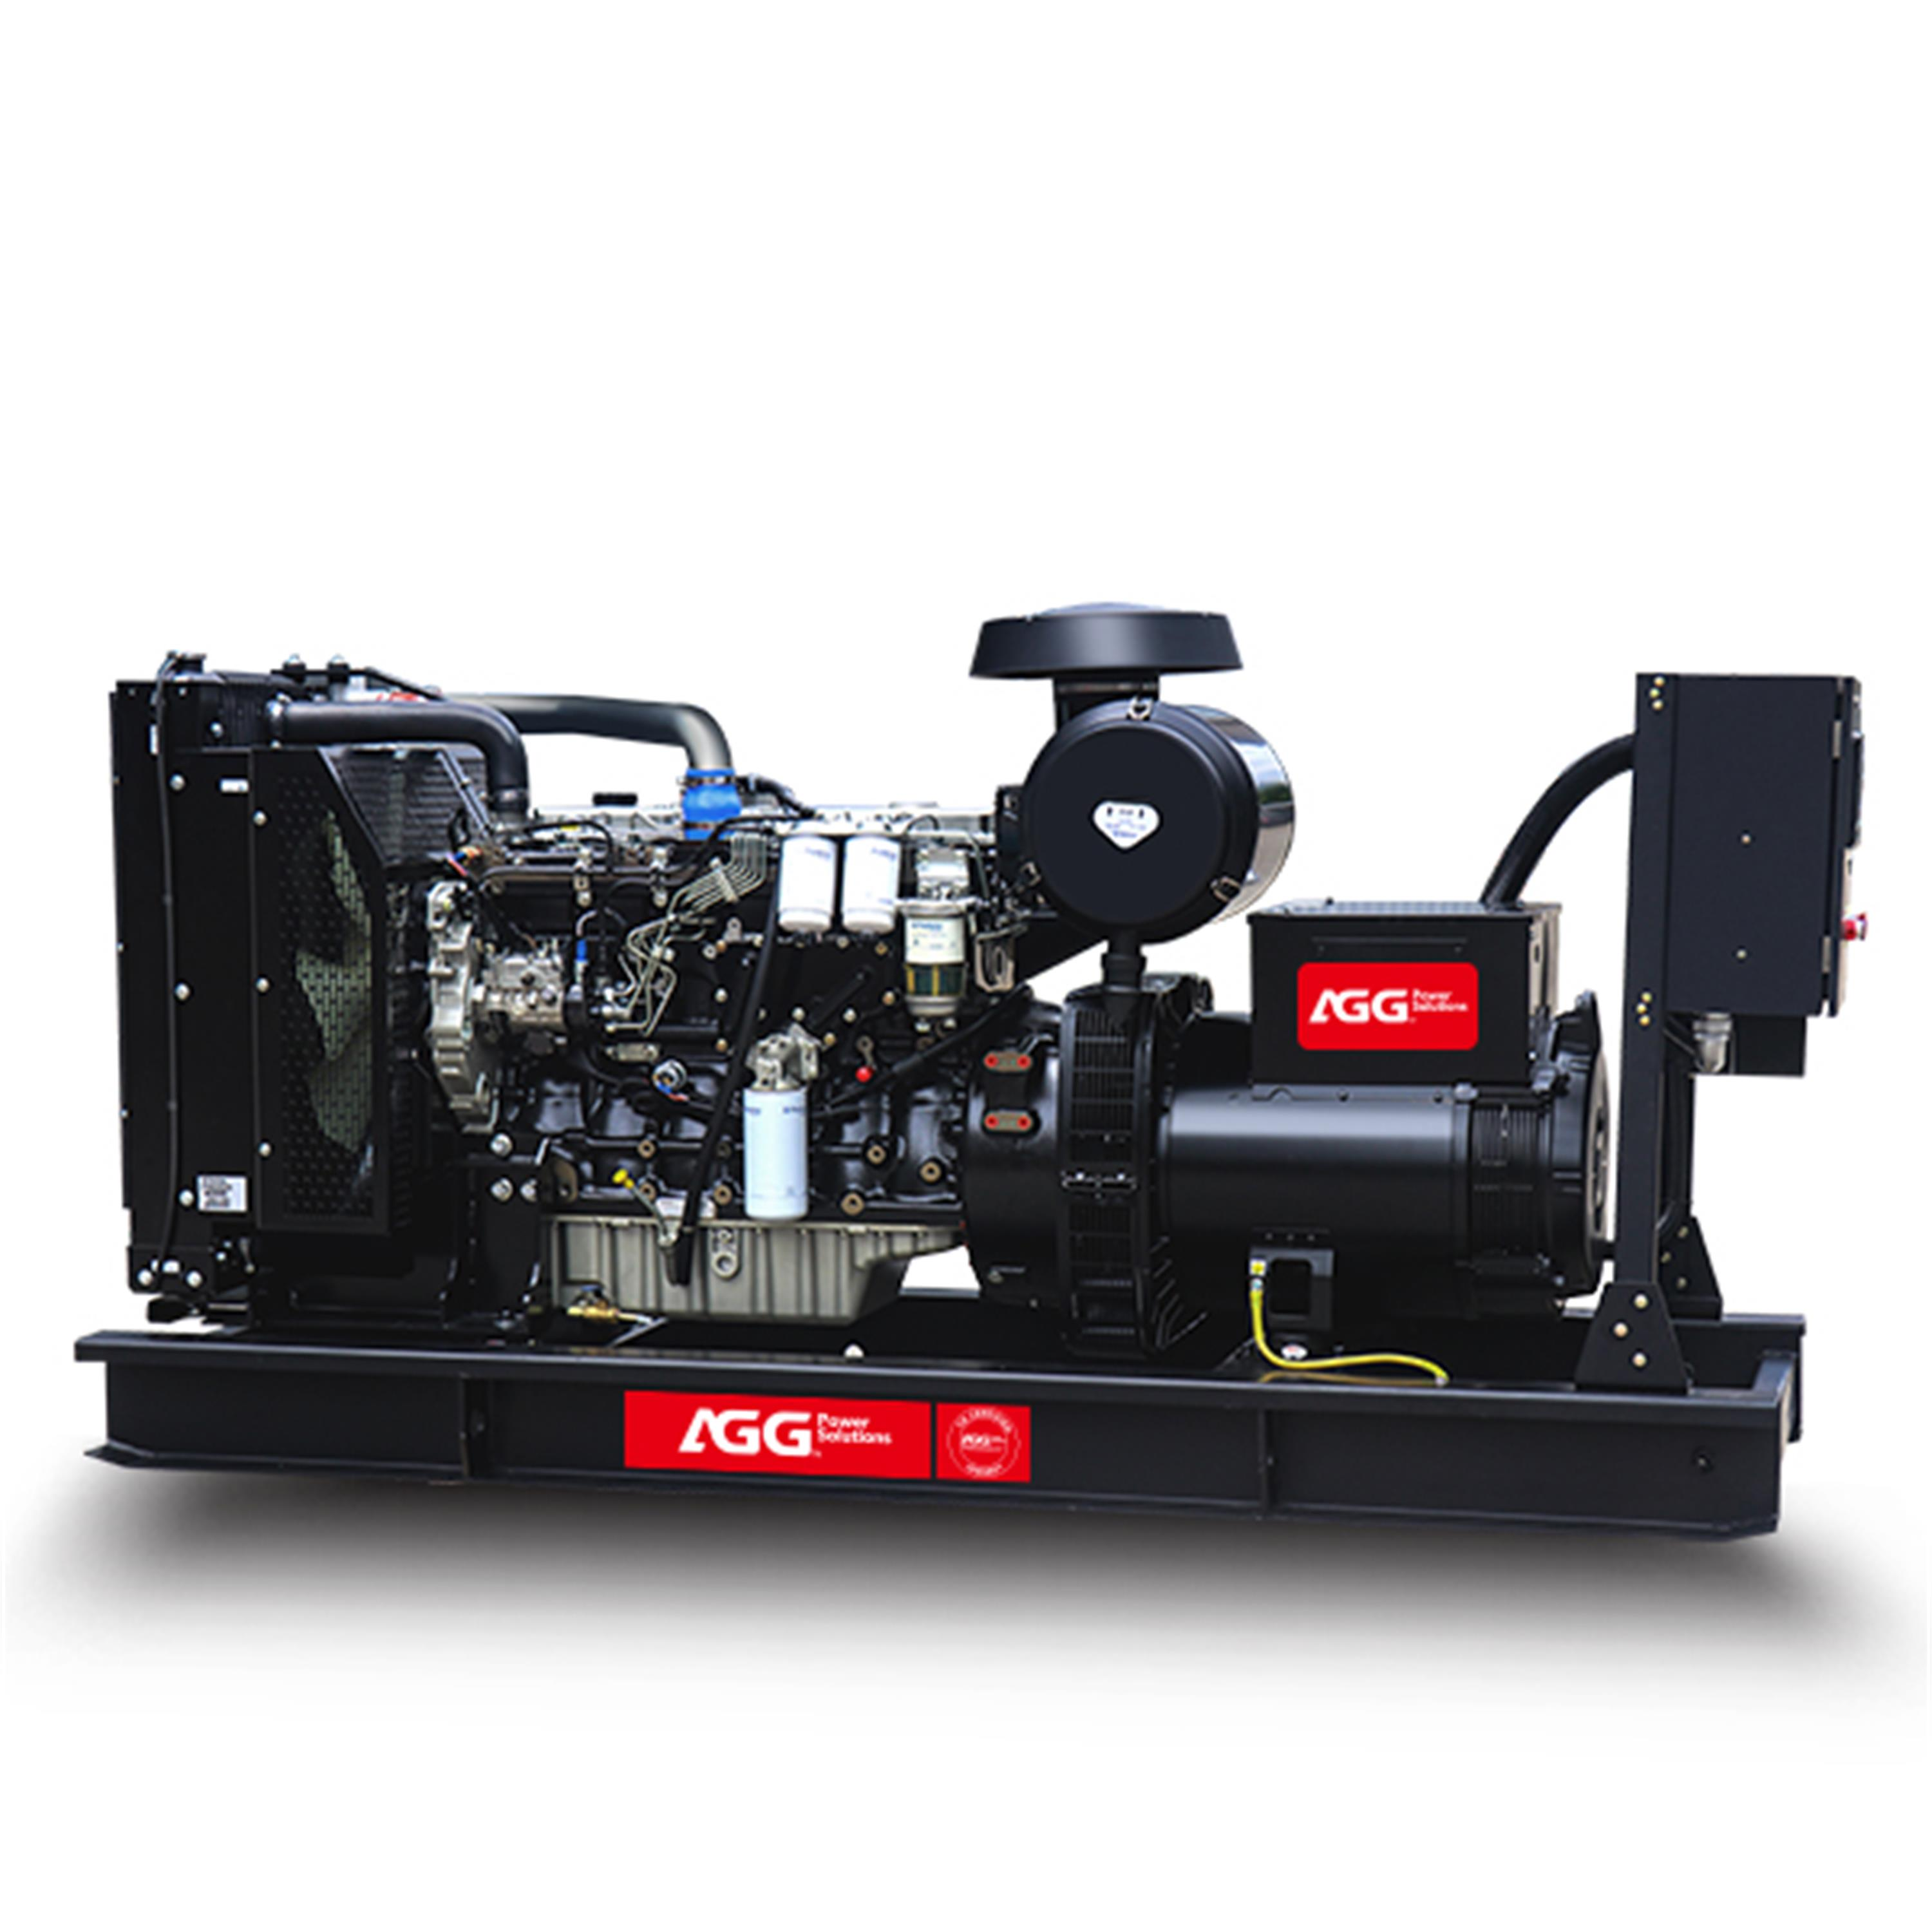 2019 Good Quality Single Phase Diesel Engine Generator – P938D6-60HZ – AGG Power Featured Image